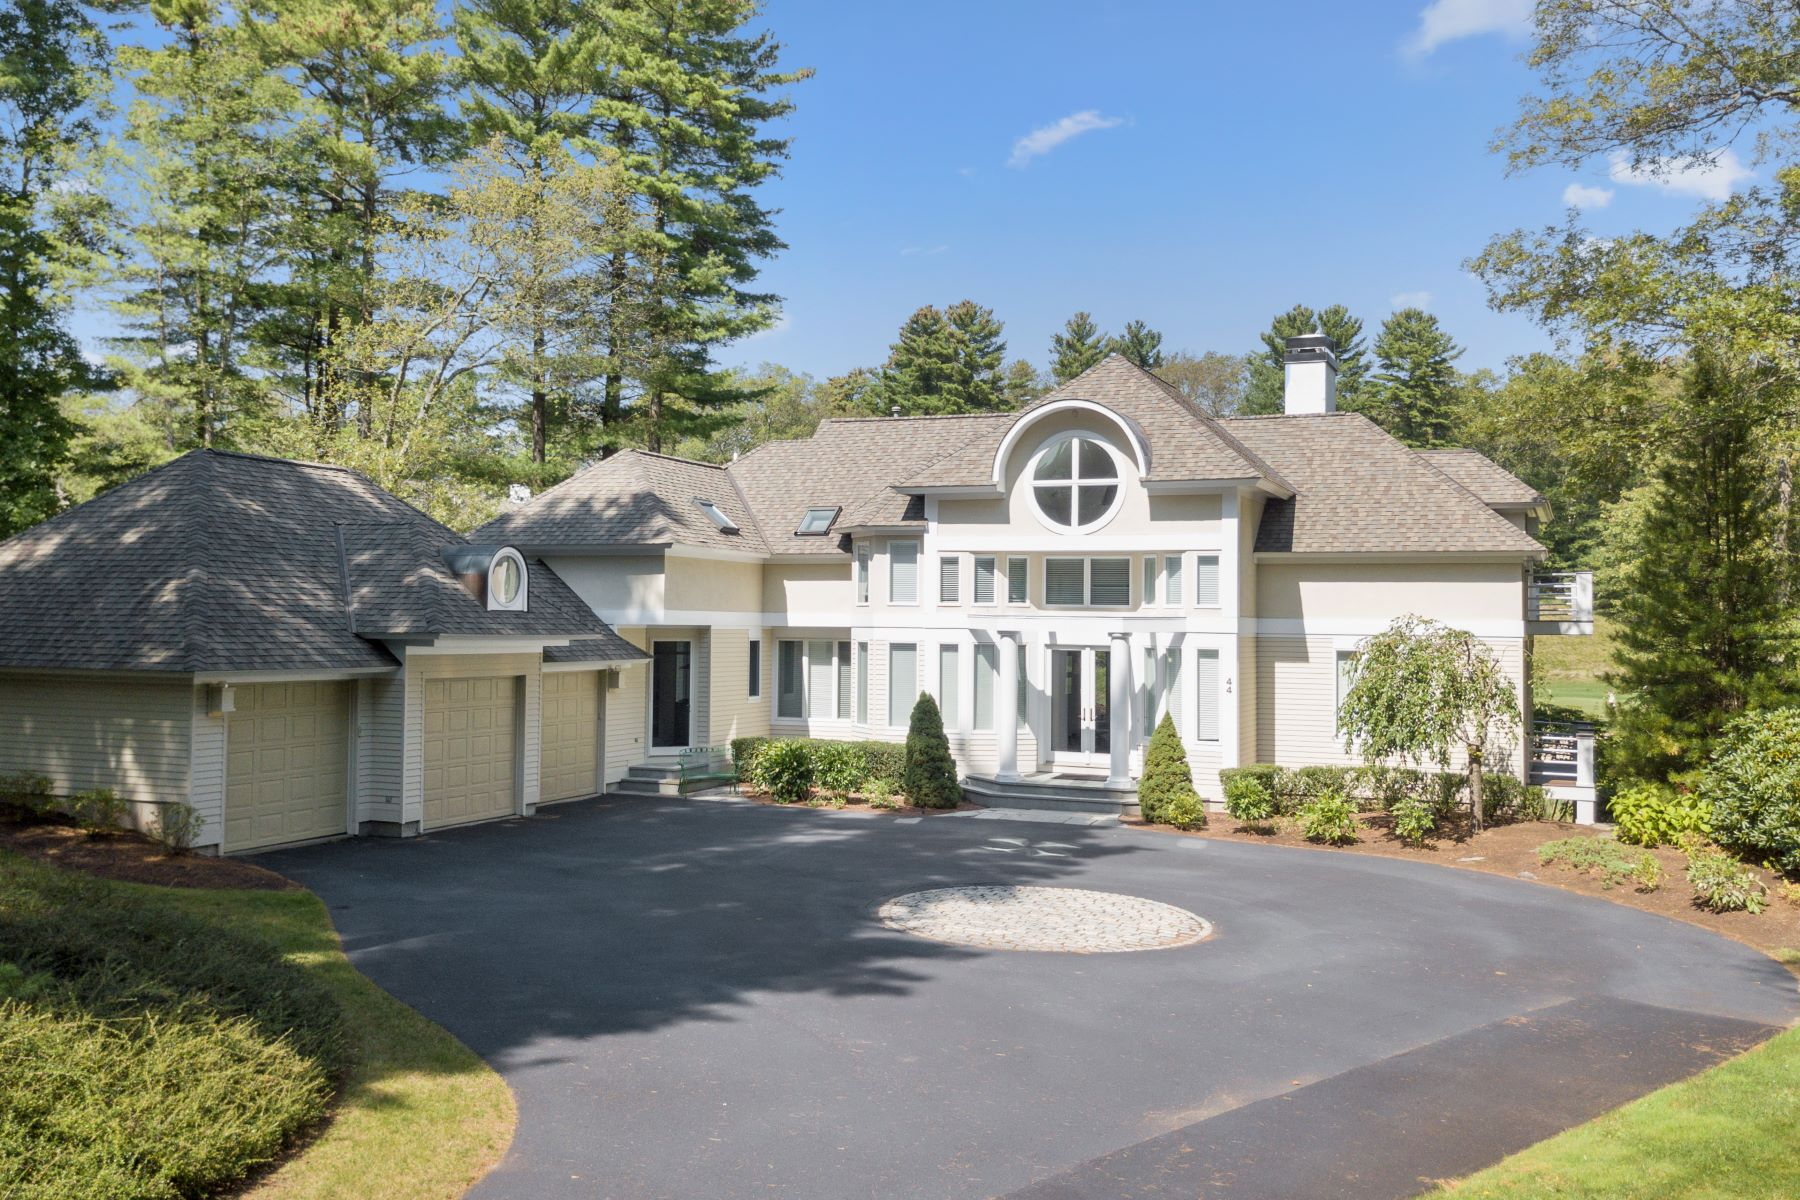 Casa Unifamiliar por un Venta en Privacy And View's 44 Southpoint Lane Ipswich, Massachusetts 01938 Estados Unidos